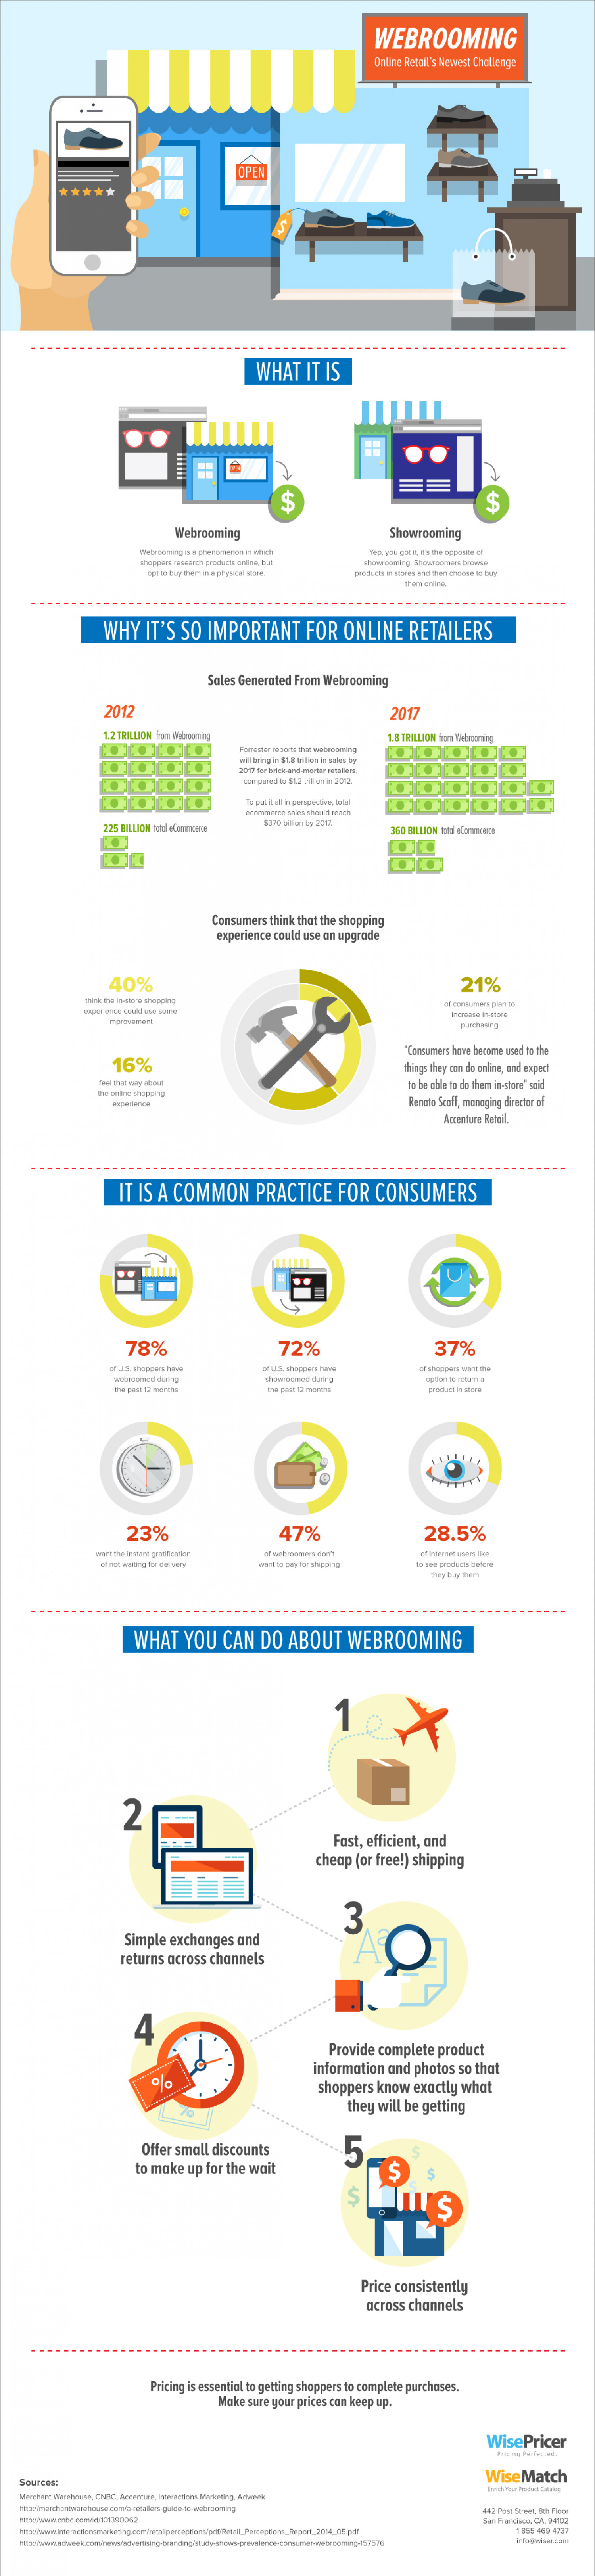 Webrooming: Online Retail's Newest Challenge Infographic